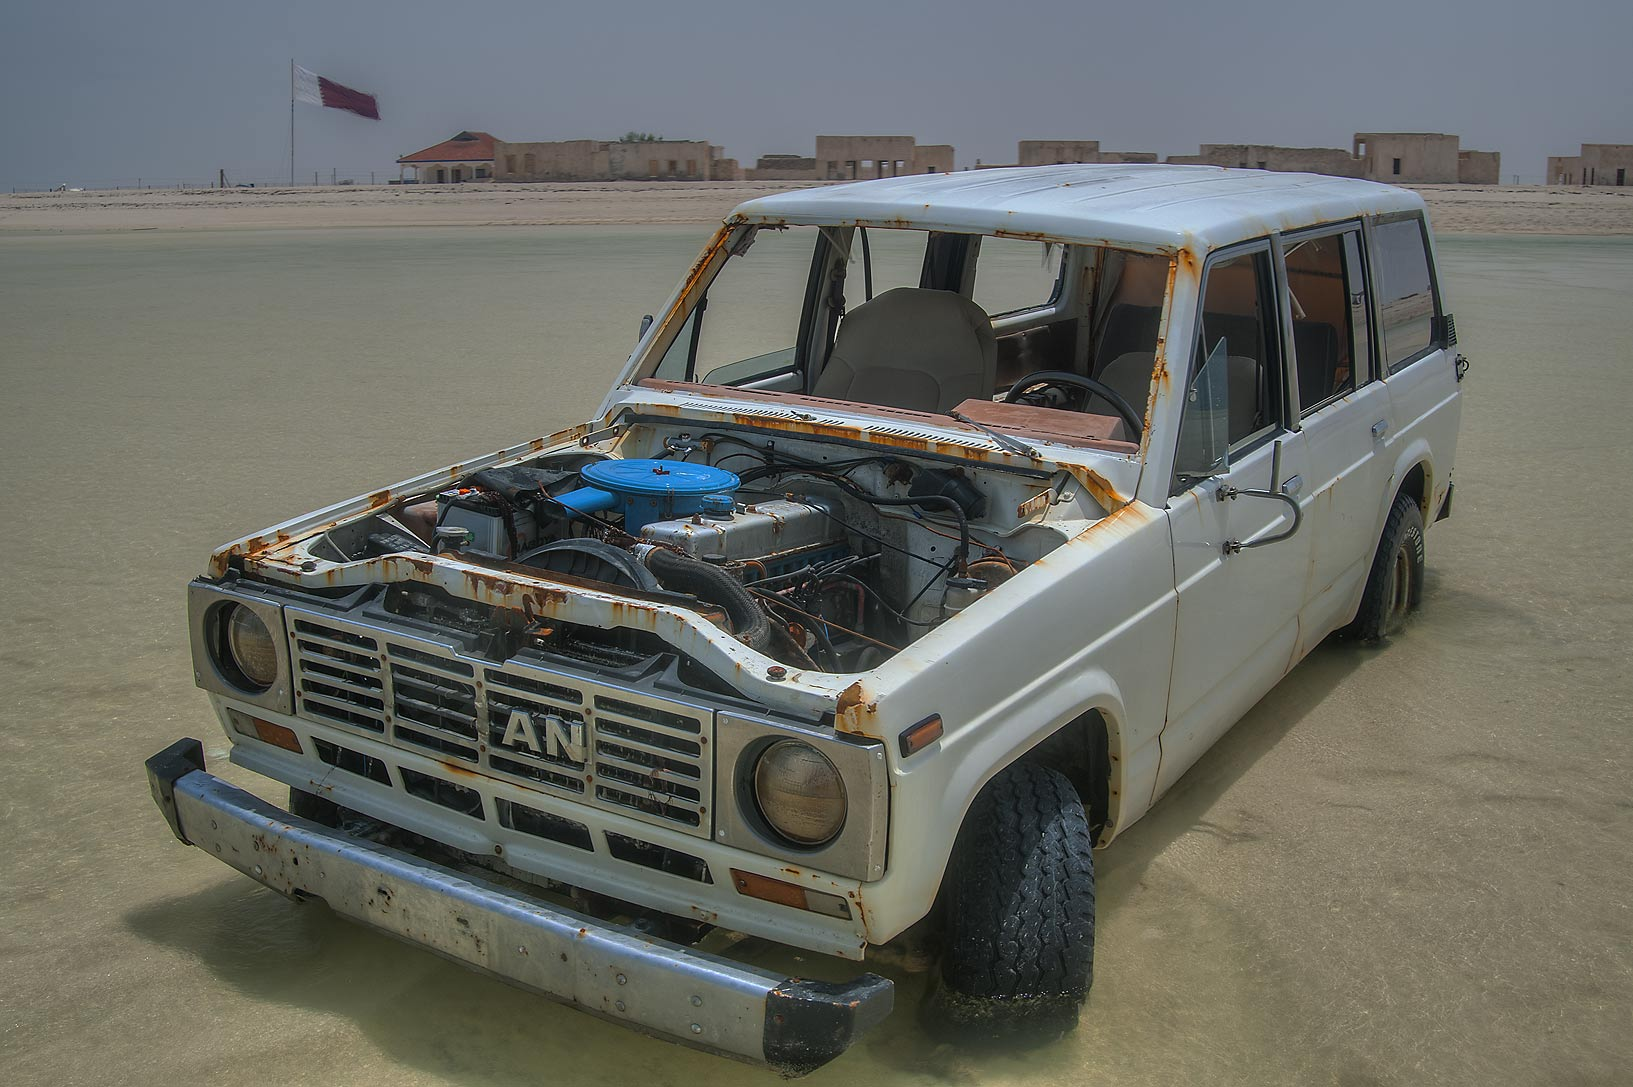 Abandoned car in Persian Gulf near Al Mafjar village, northern area near Ruwais. Qatar